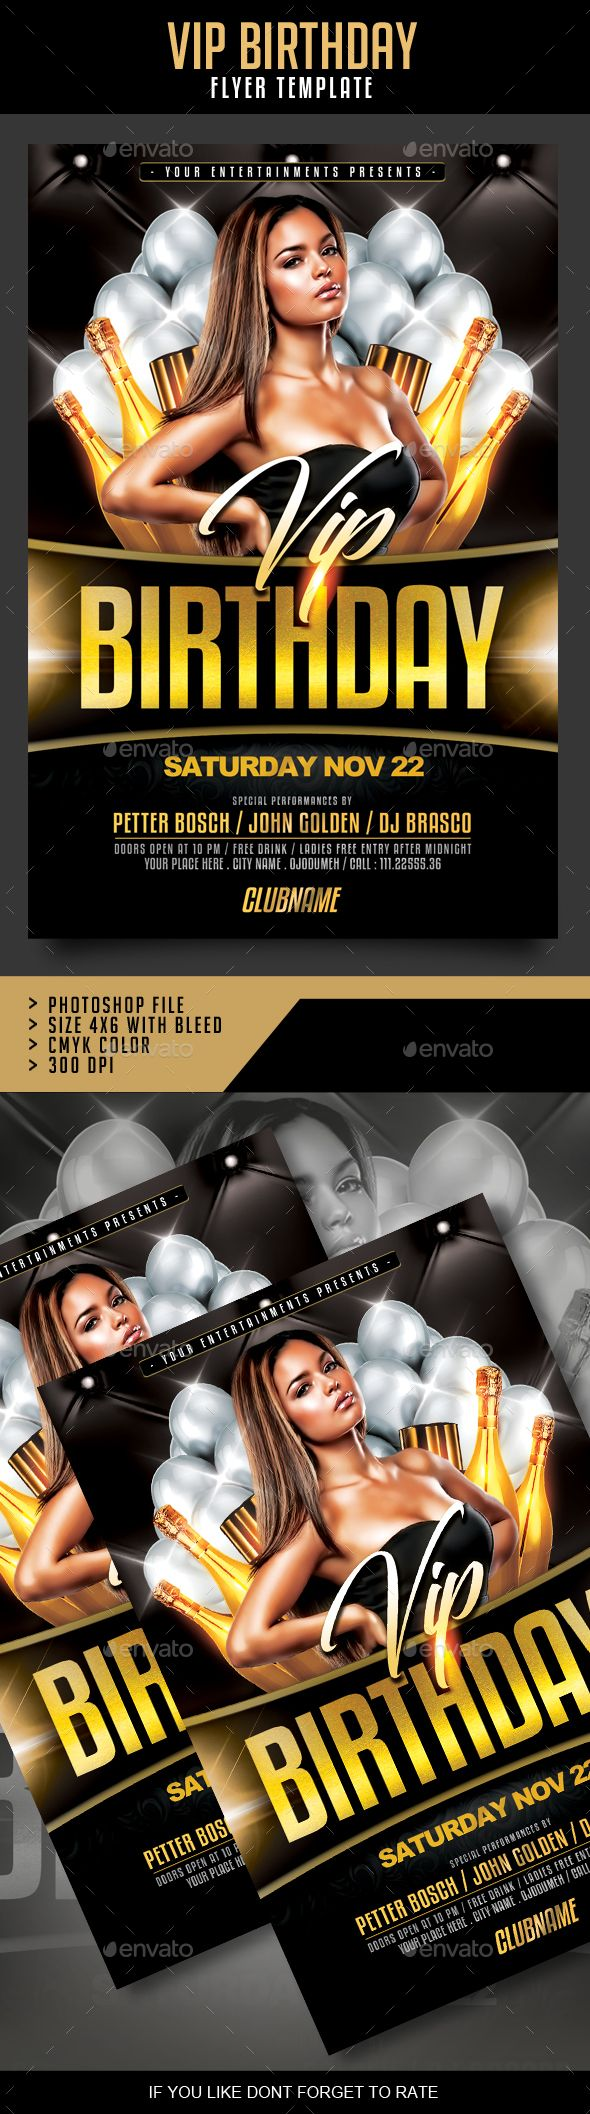 Vip Birthday Flyer  Vip Flyer Template And Event Flyers